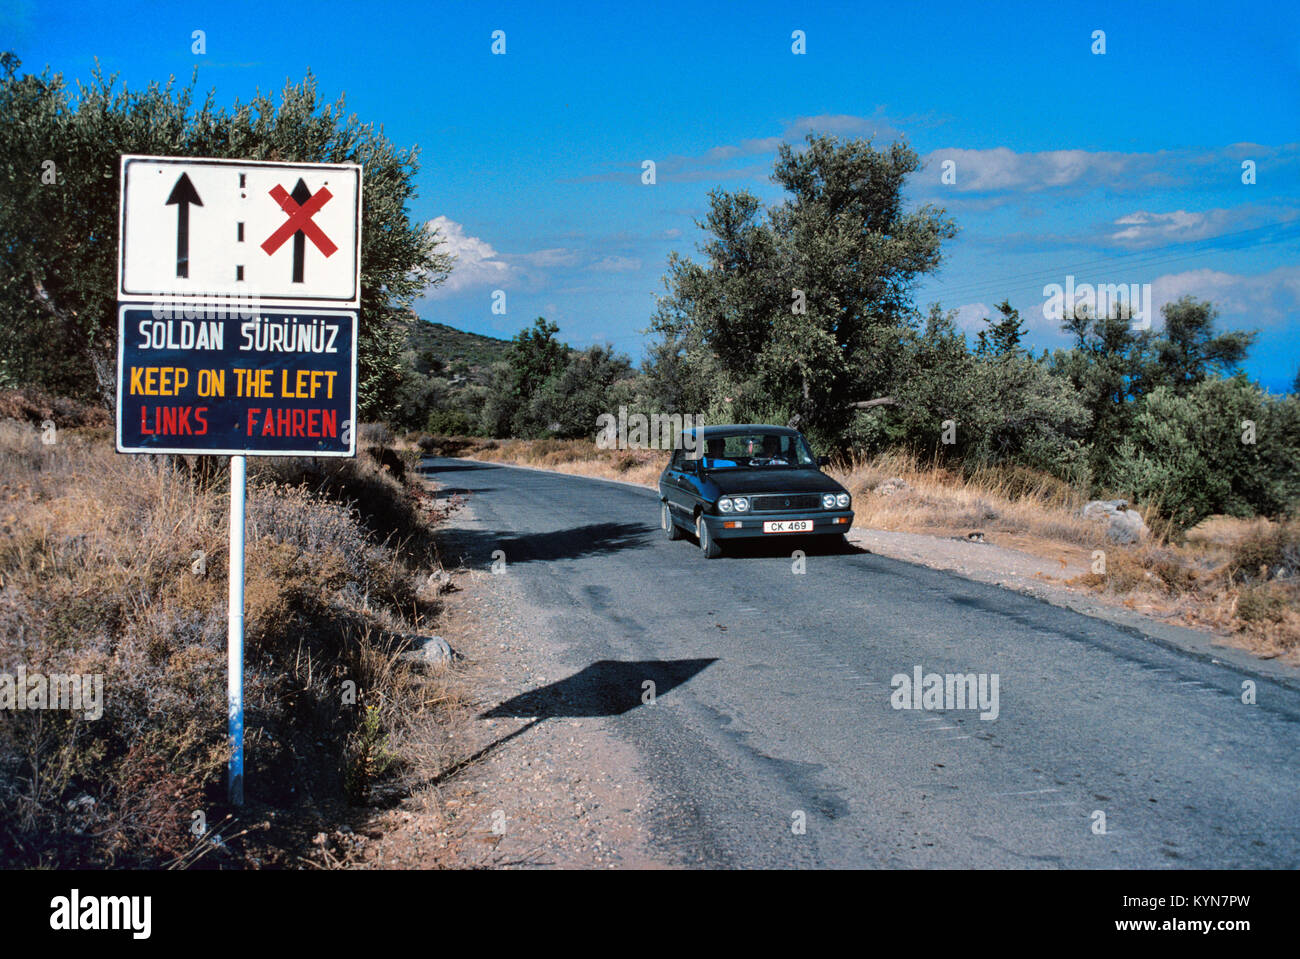 Keep Left, Drive on the Left, or Left Hand Drive Road Sign, Northern Cyprus - Stock Image